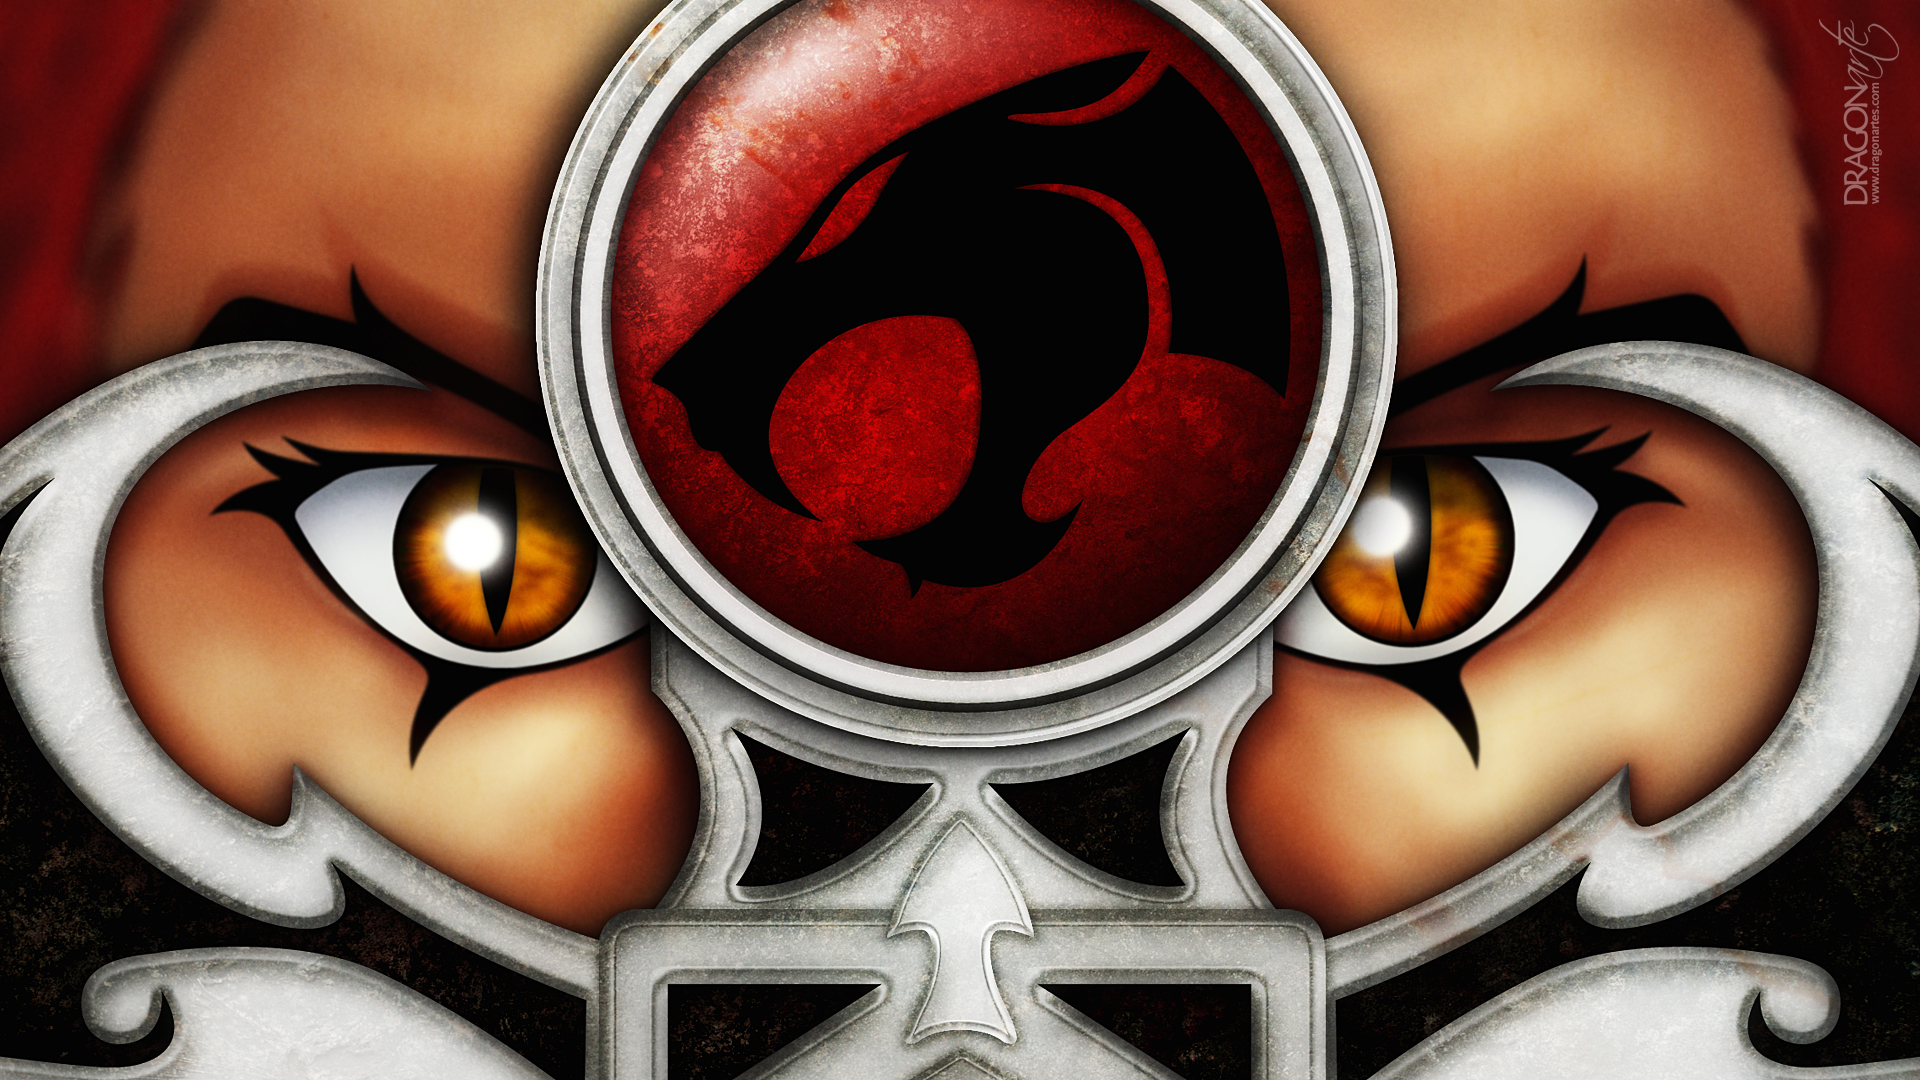 Thundercats Wallpapers Pictures Images